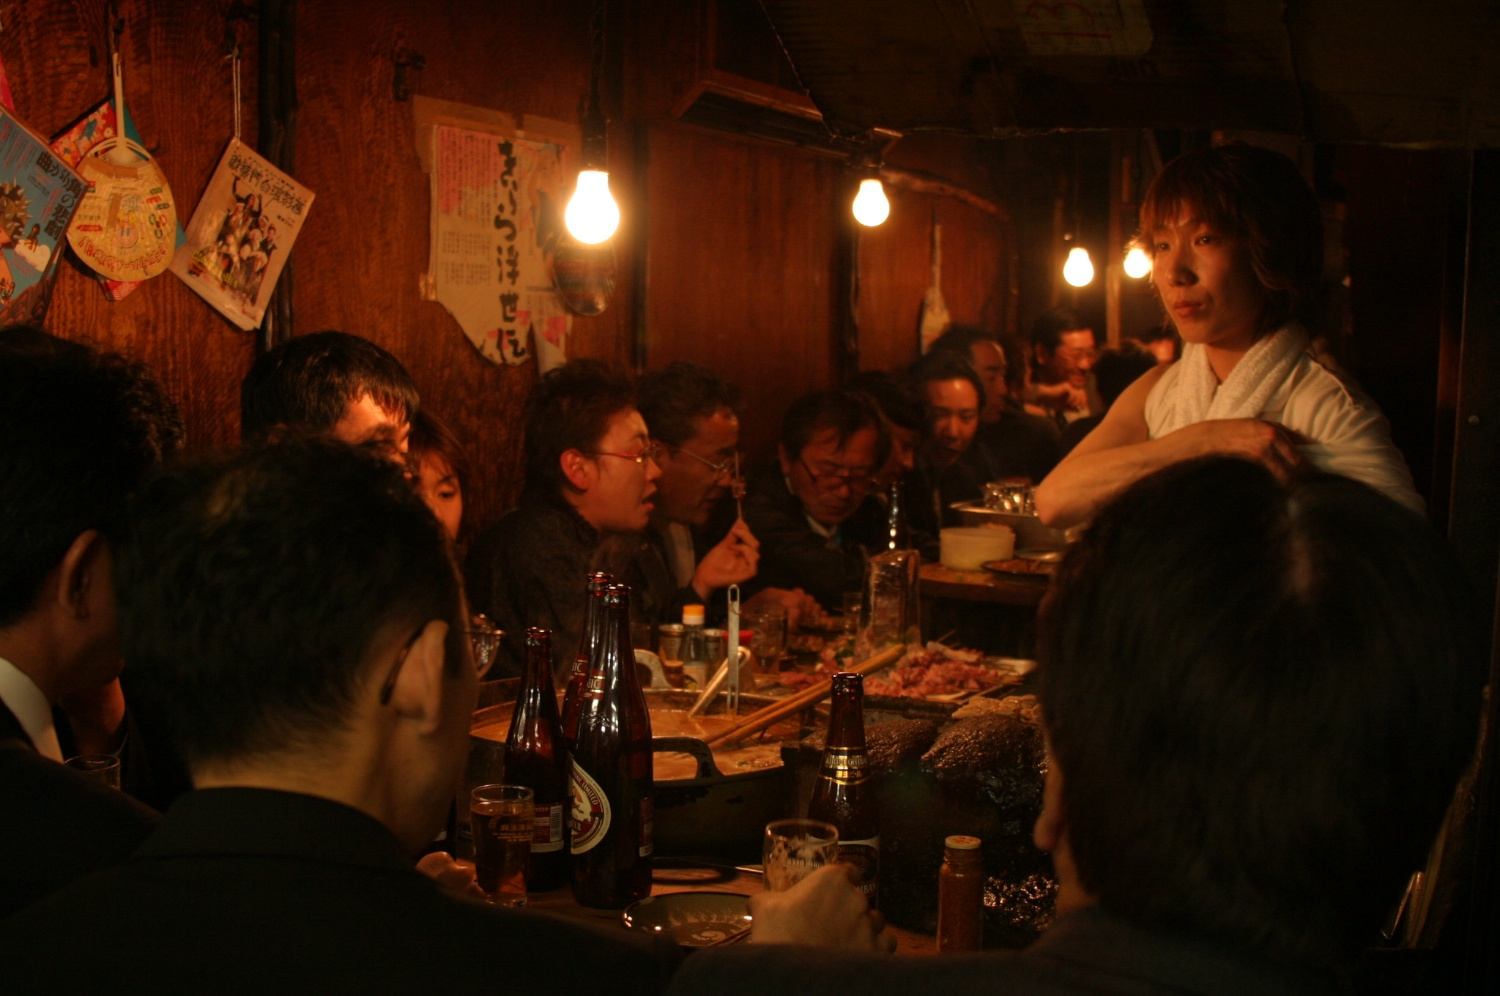 Diners Tokyo 04/2004   © photo by AJ Weissbard